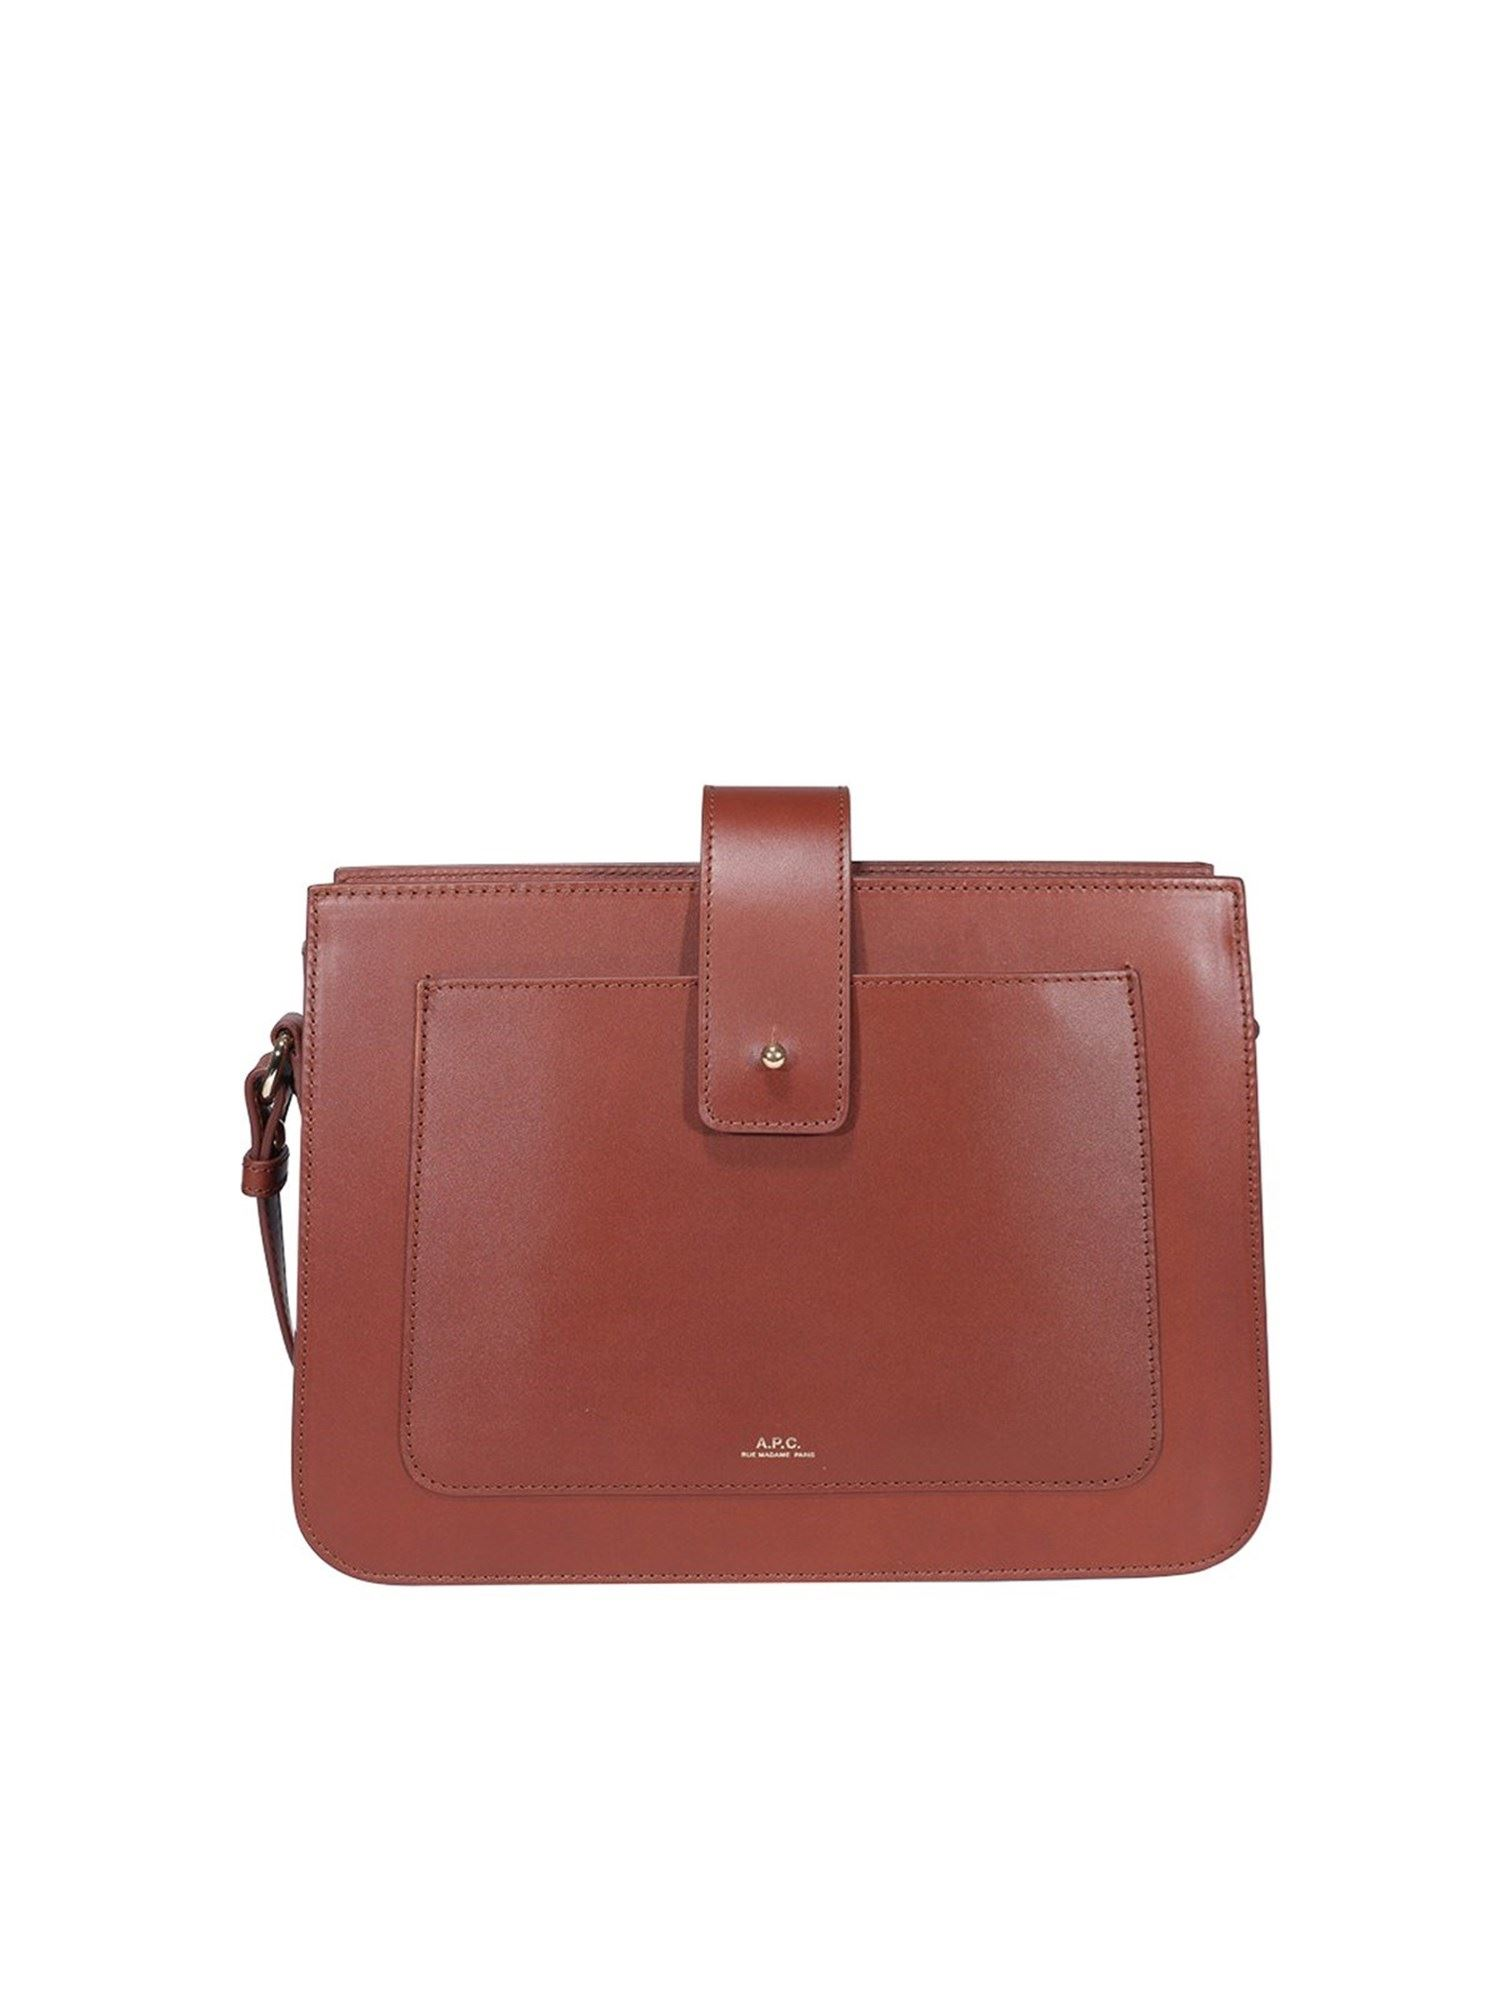 A.p.c. Leathers ALBANESHOULDER BAG IN BROWN